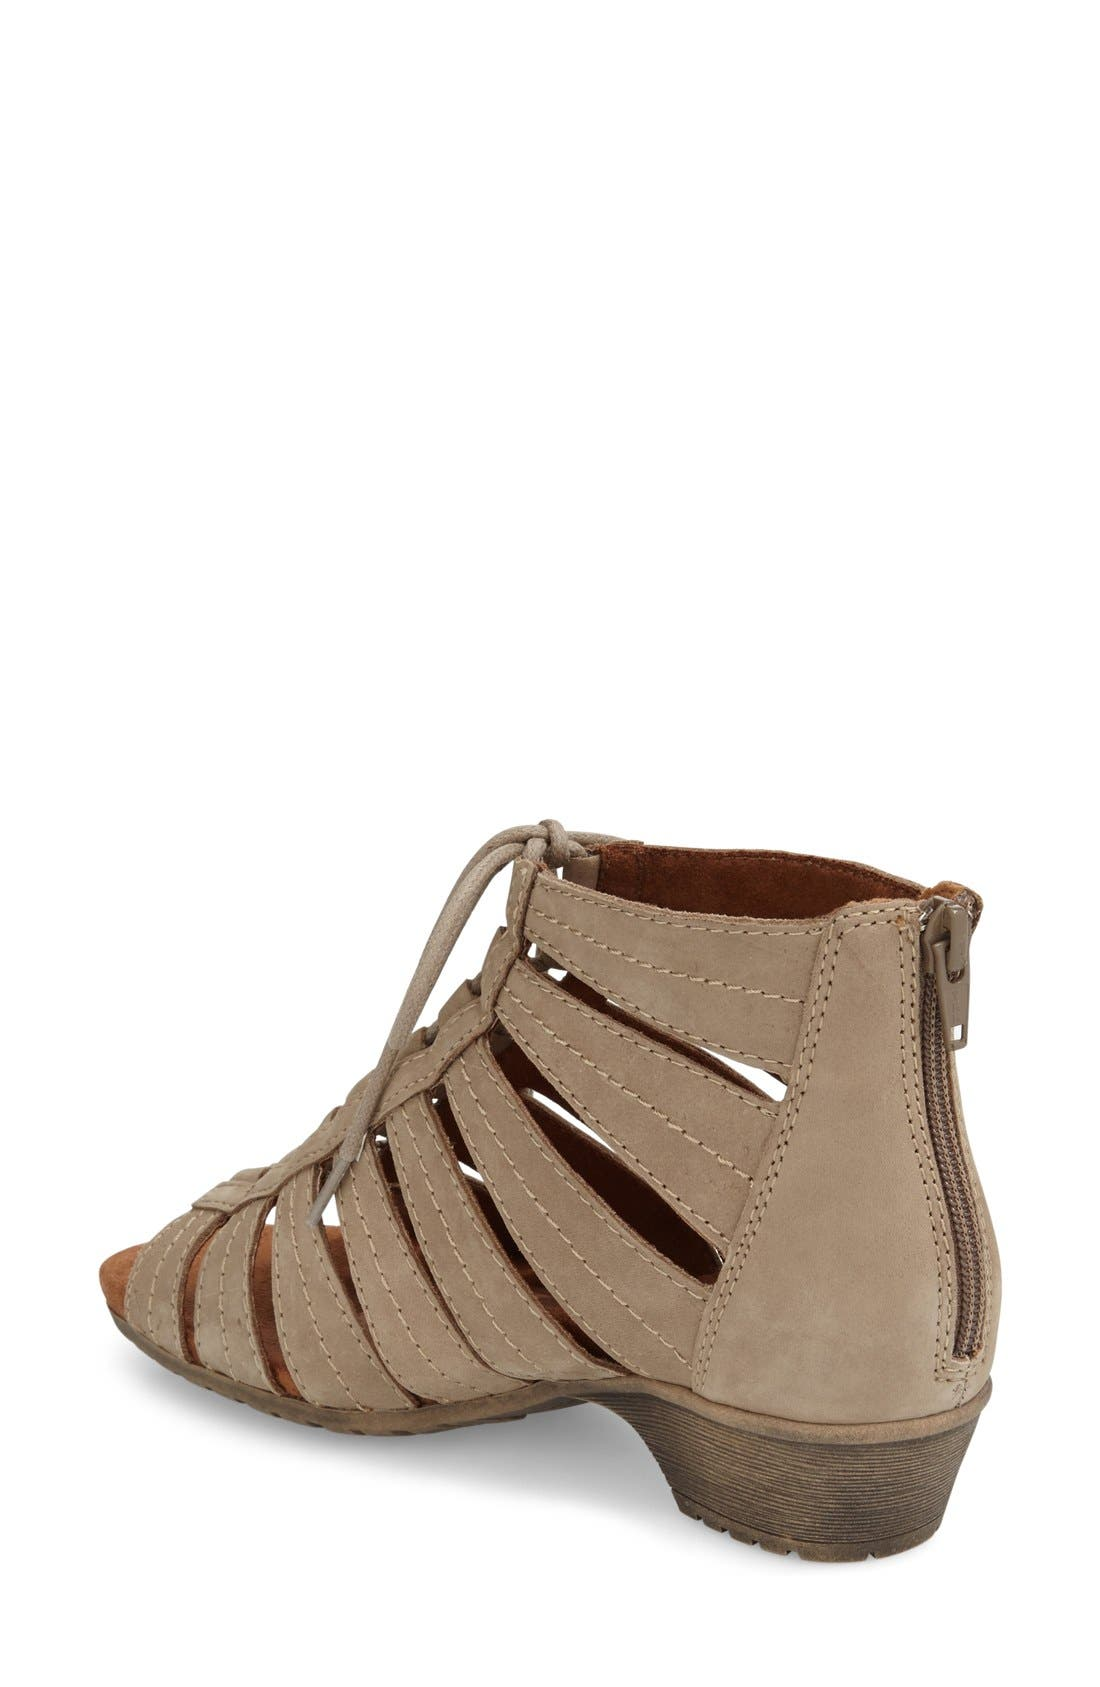 'Gabby' Lace-Up Sandal,                             Alternate thumbnail 46, color,